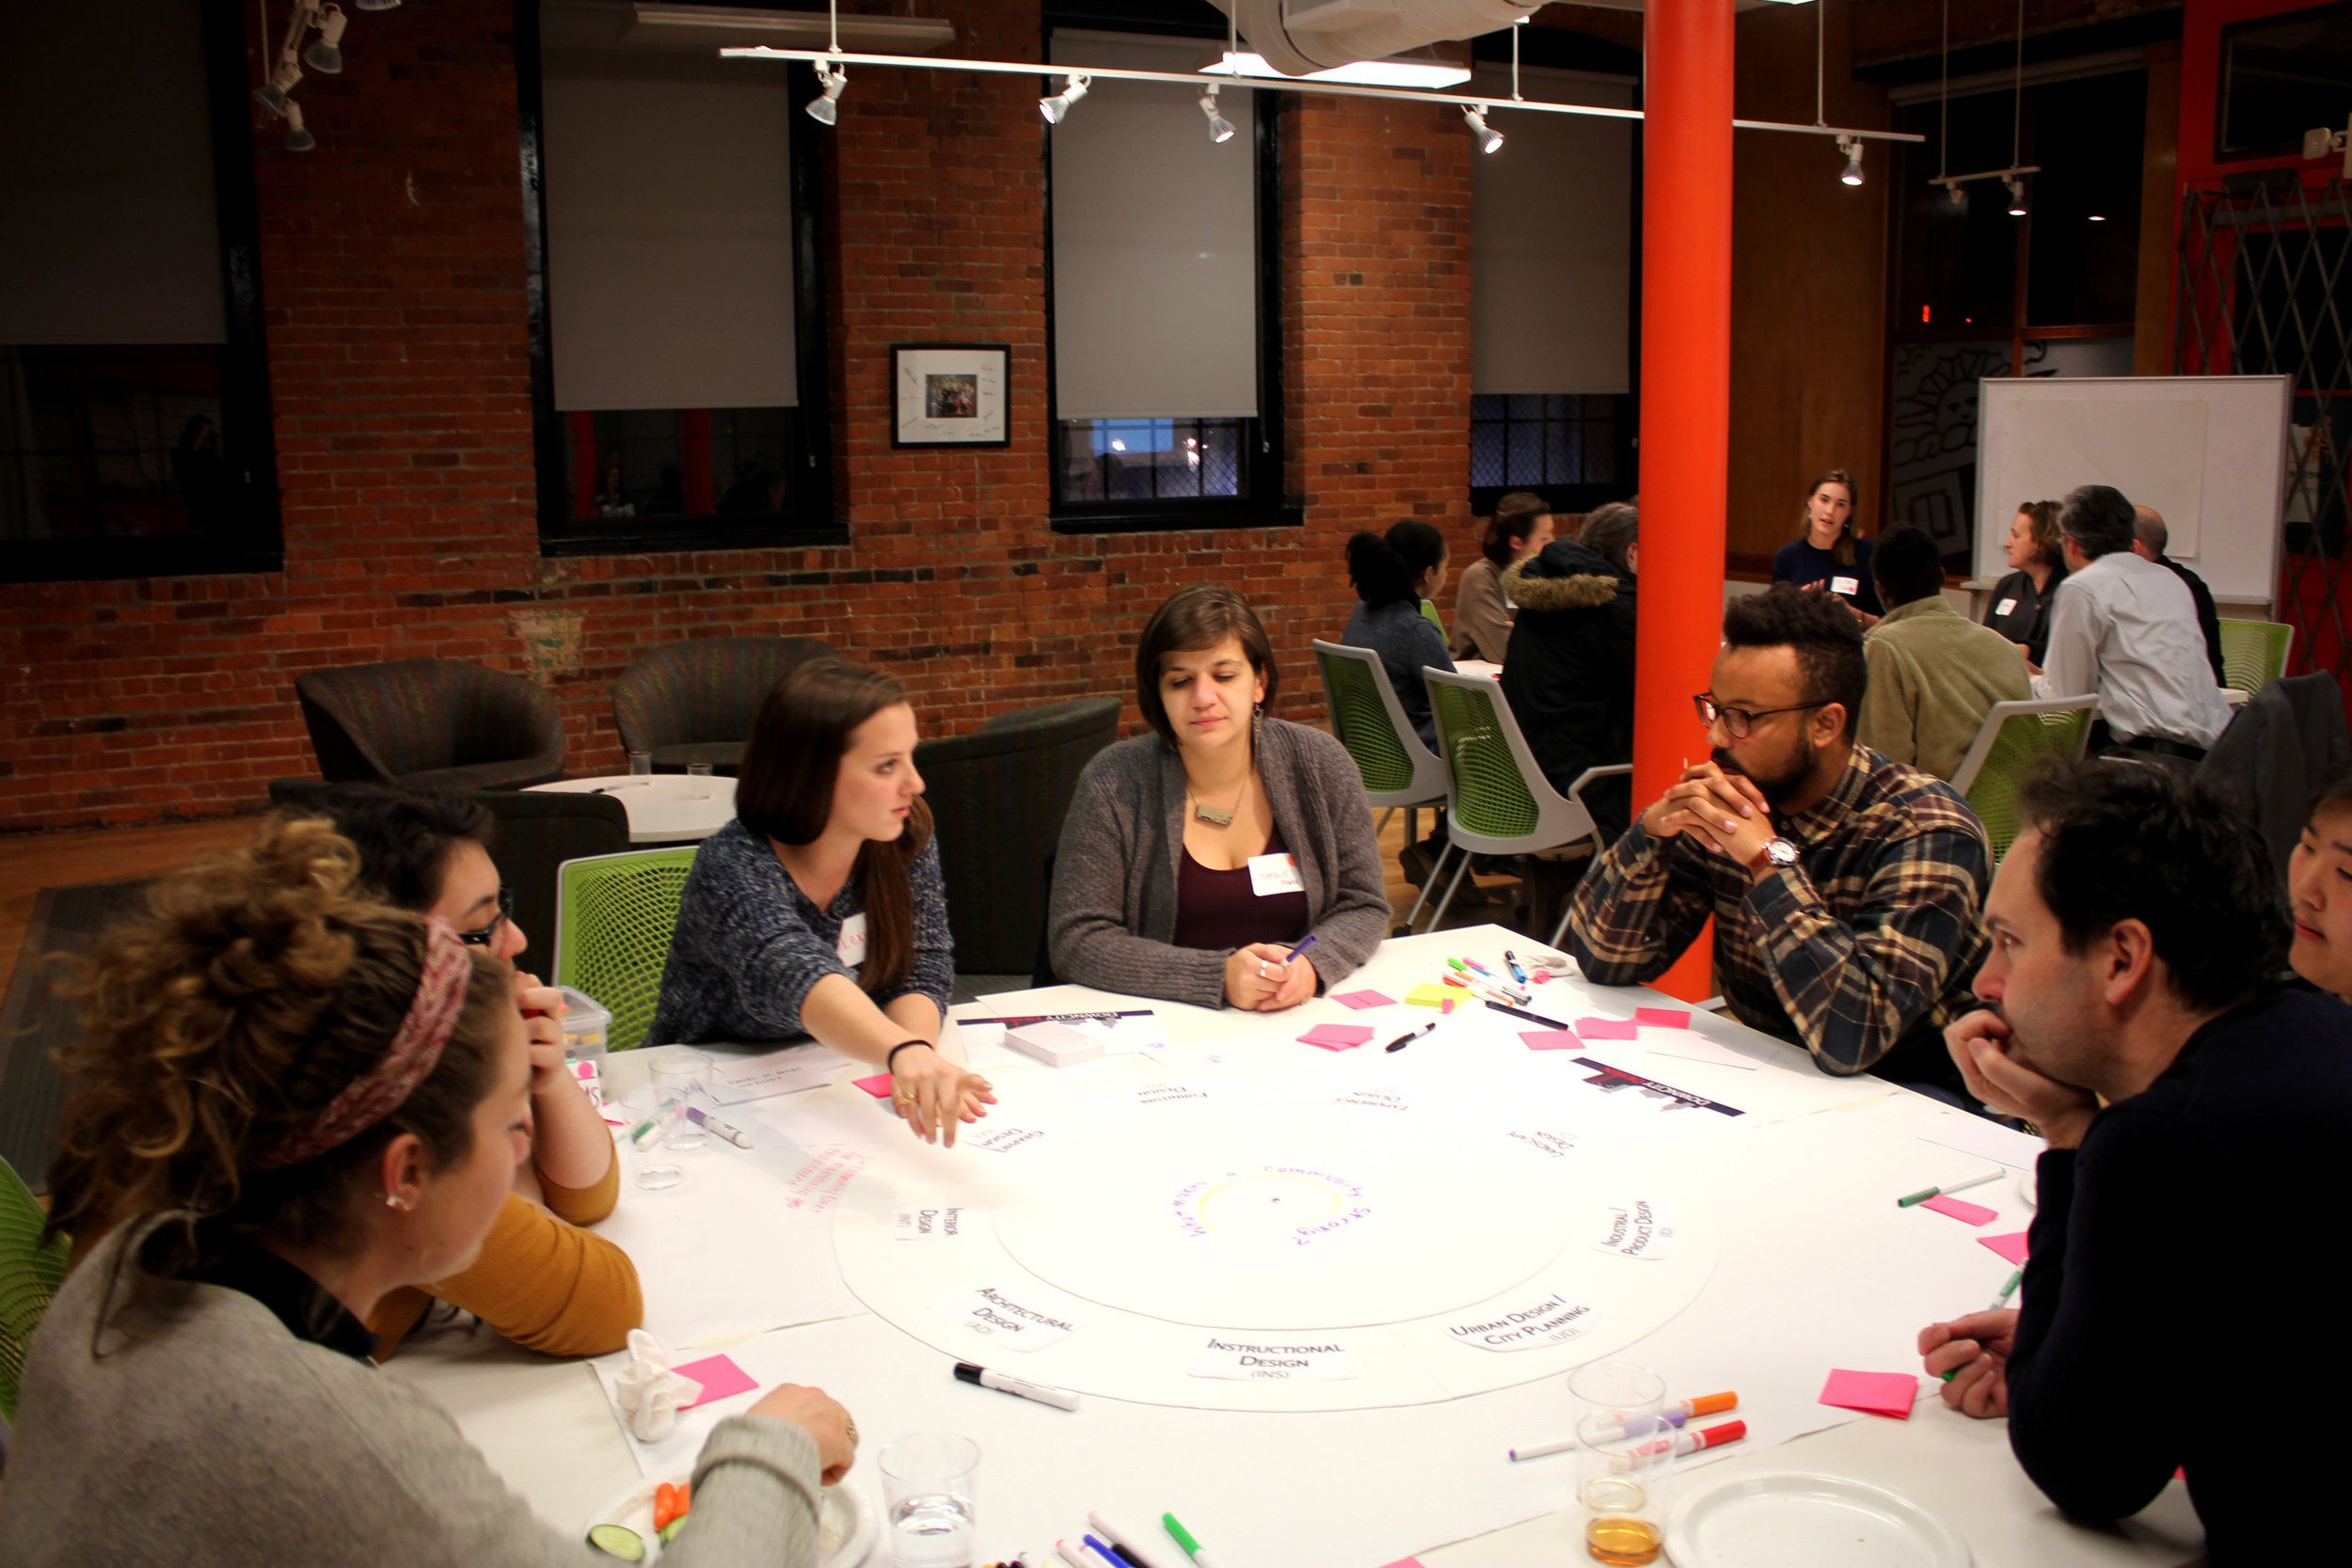 Imagine With Us - The design process in the hands of conscientious community members can help address pressing issues, amplify stakeholder voices, and illuminate new paths forward.Are you working on innovative solutions for Rhode Island communities?